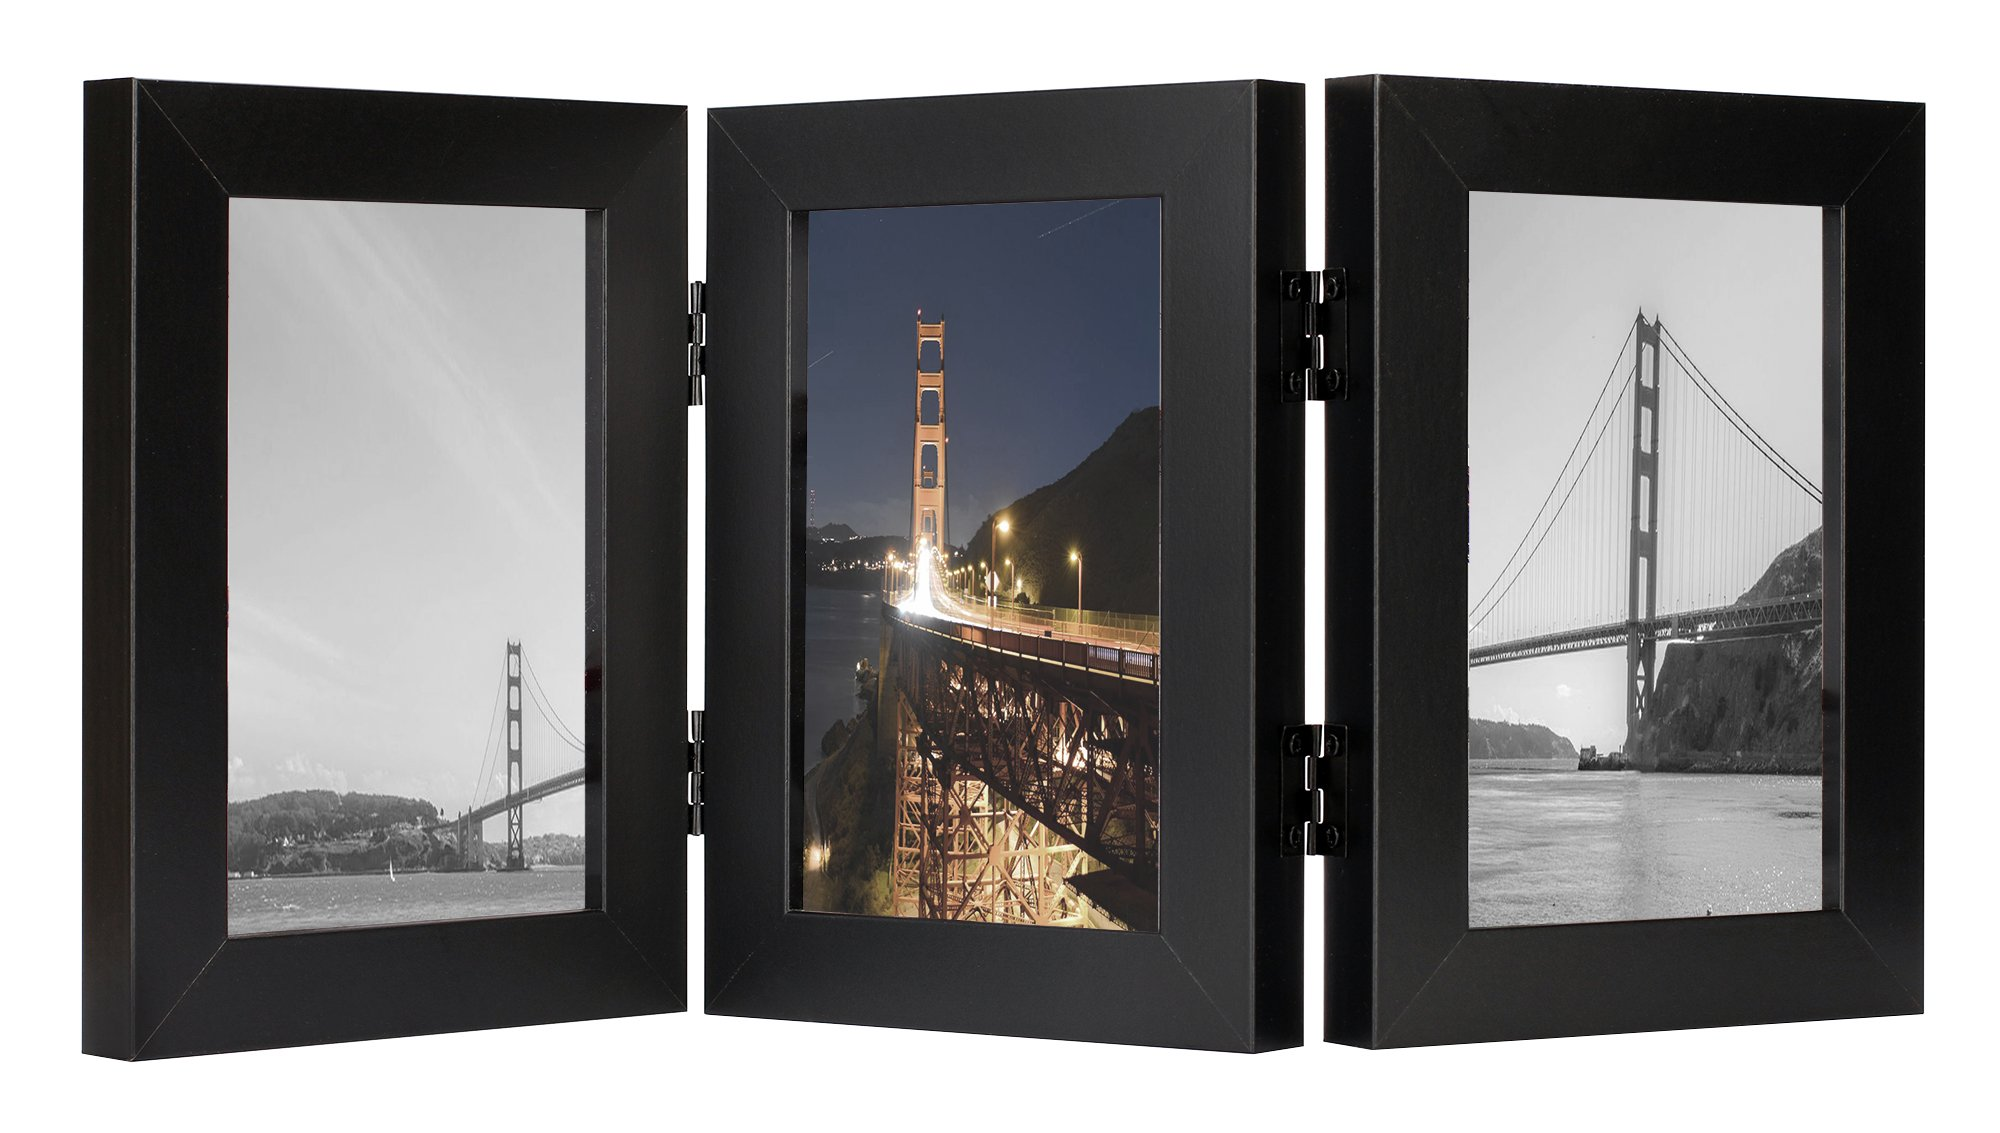 Frametory, 4x6 Inch Triple Hinged Black Picture Frame - Made to Display Three 4x6 Inch Pictures, Stands Vertically on Desktop or Table Top, Real Glass Front by Frametory